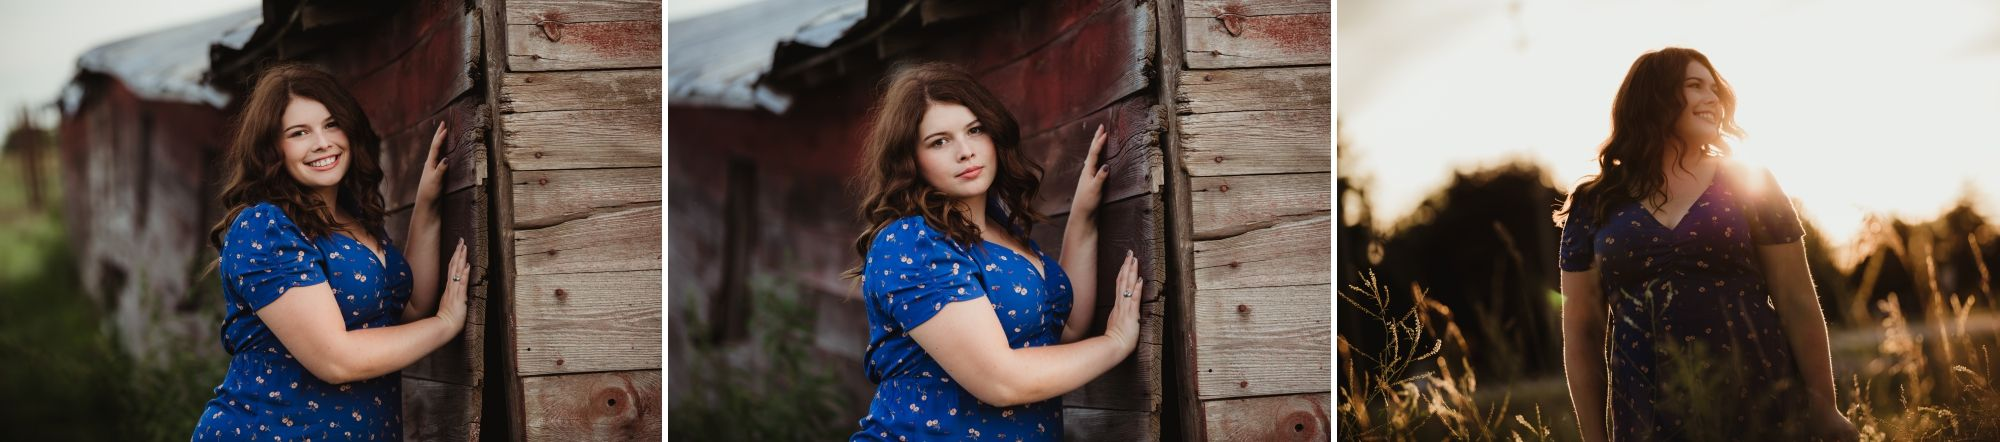 High school senior girl in a blue shirt leaning against an old barn and then standing in a field at sunset.